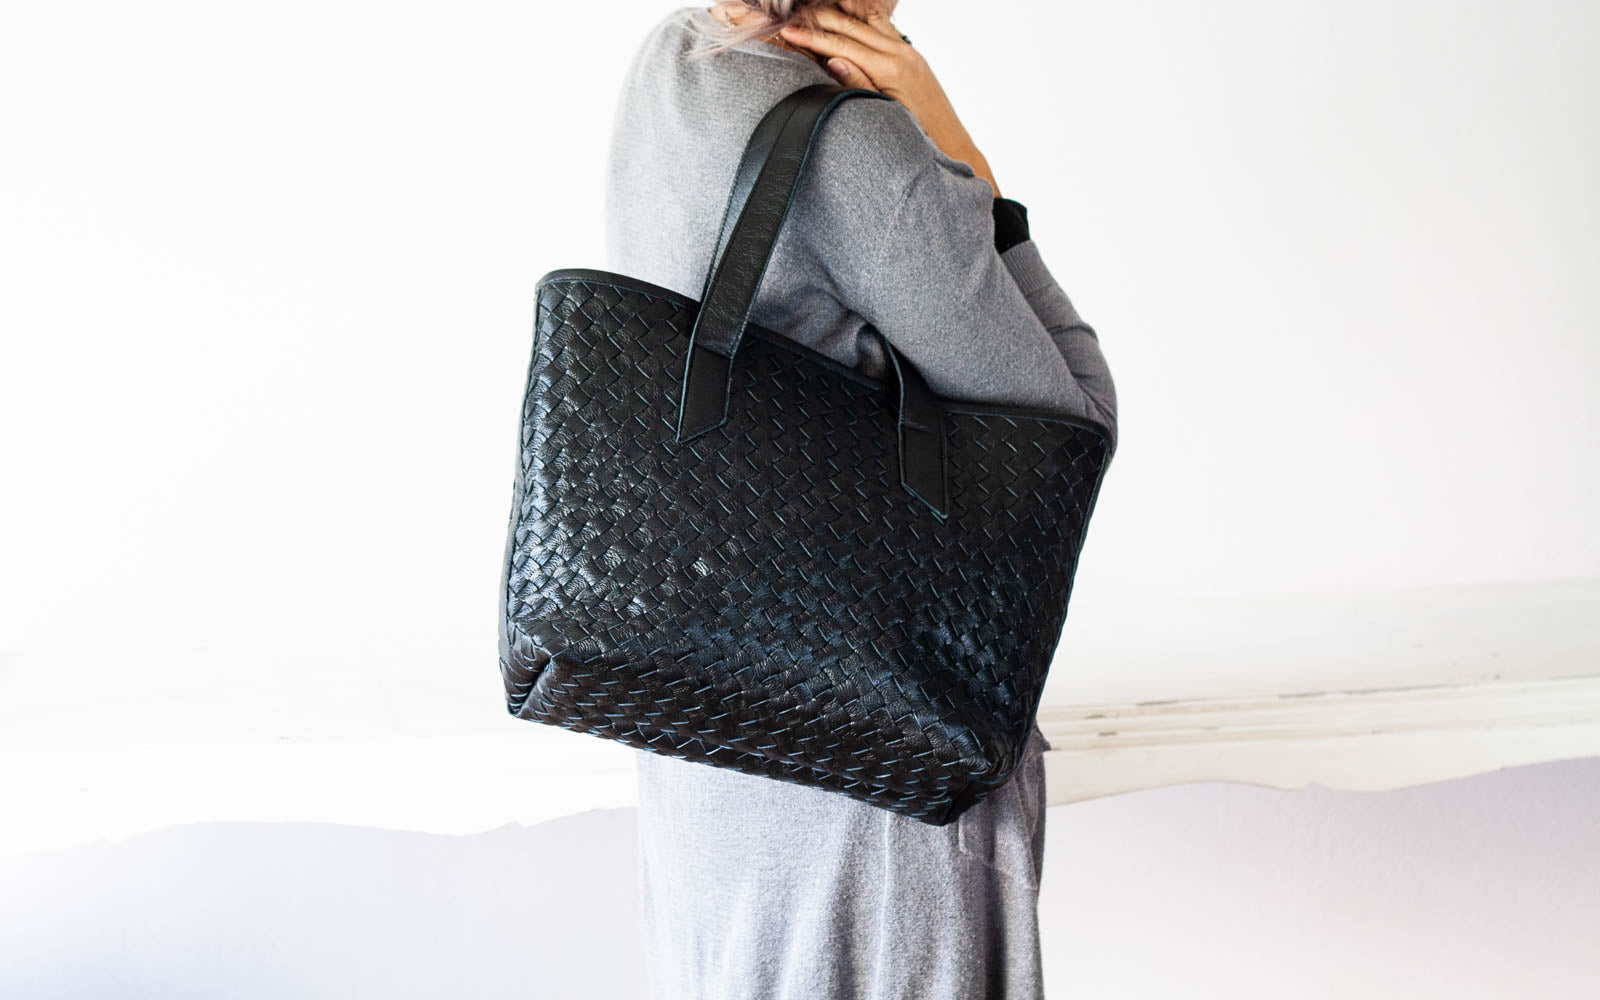 The Calisto tote bag in black handwoven leather by milloo bags